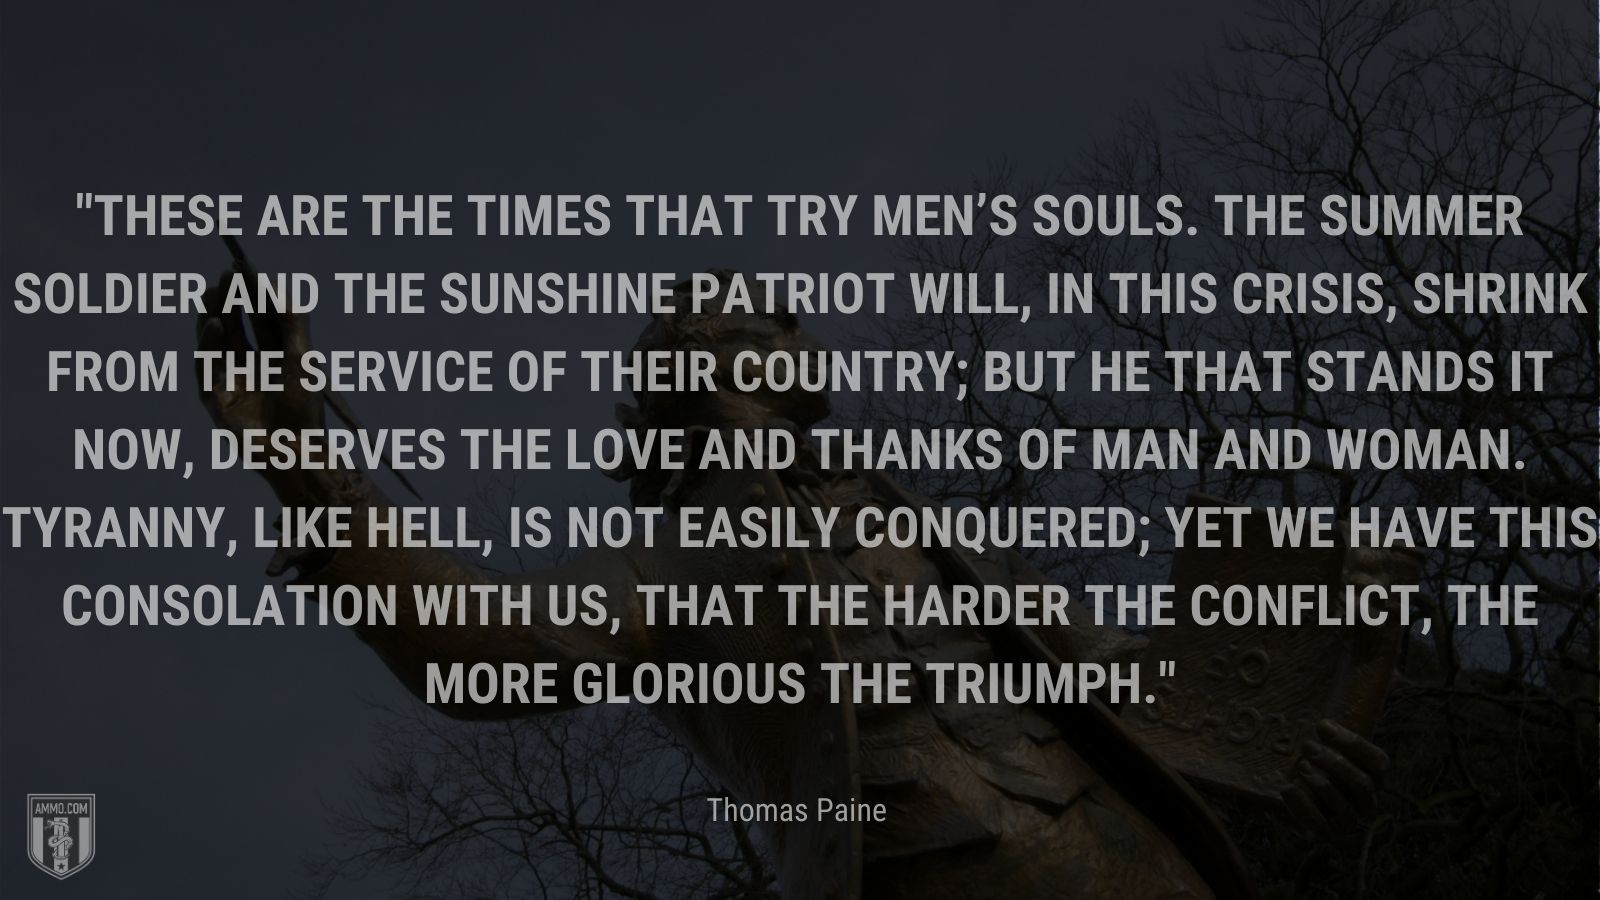 """""""These are the times that try men's souls. The summer soldier and the sunshine patriot will, in this crisis, shrink from the service of their country; but he that stands it now, deserves the love and thanks of man and woman. Tyranny, like hell, is not easily conquered; yet we have this consolation with us, that the harder the conflict, the more glorious the triumph."""" - Thomas Paine"""